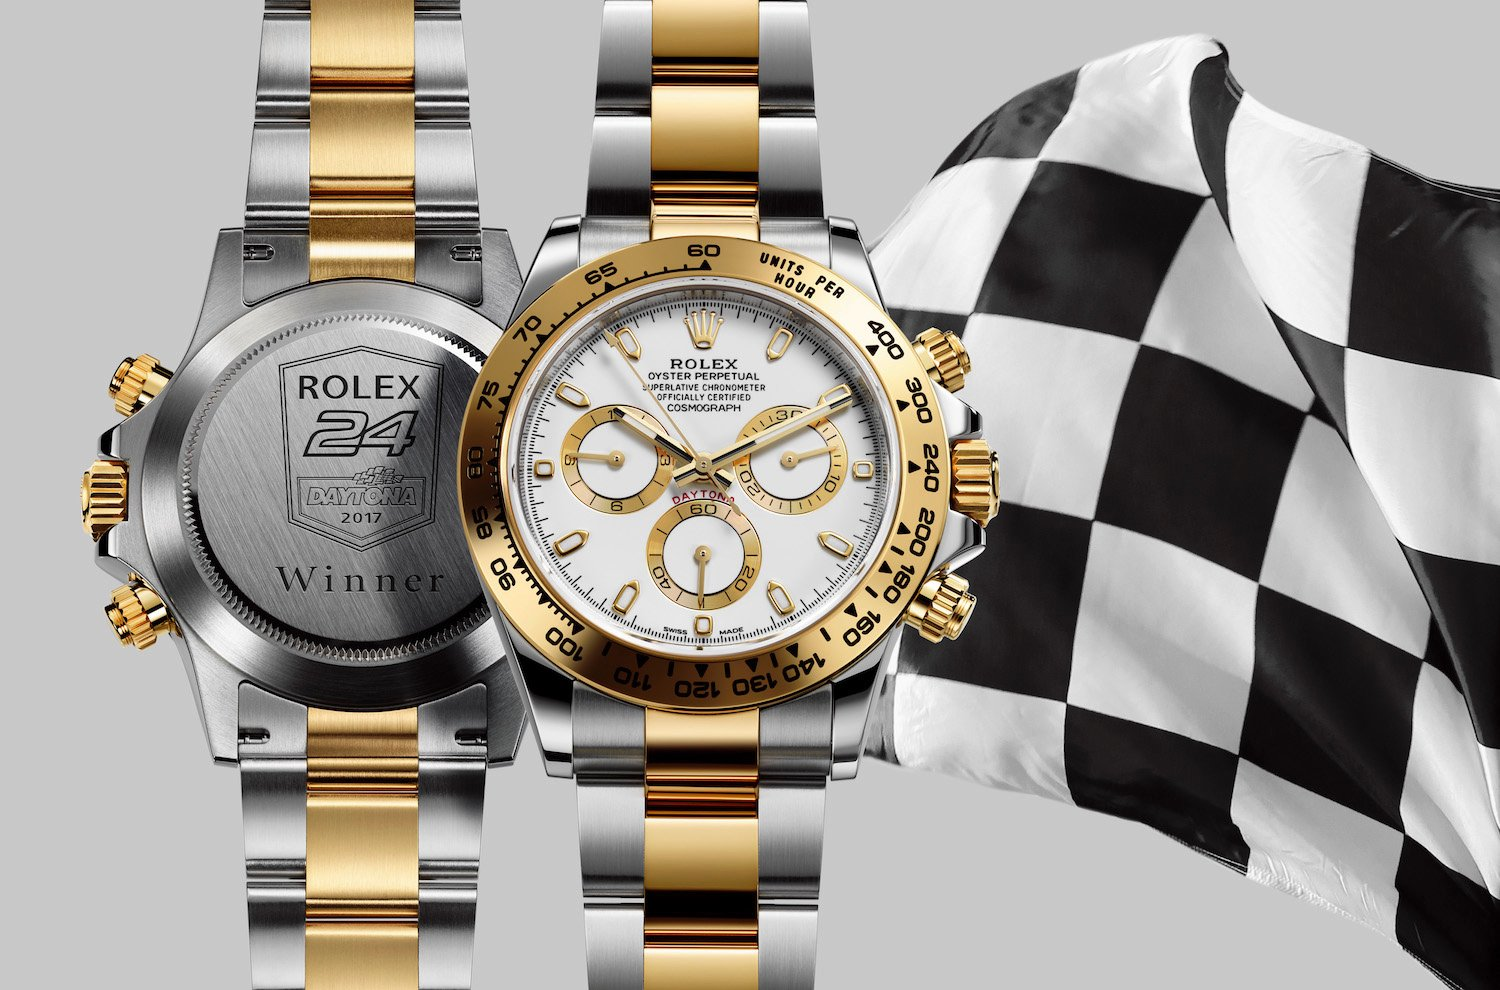 "The Daytona 116503 has an engraving on the back of the watch that reads ""Rolex 24 Daytona 2017 Winner""."